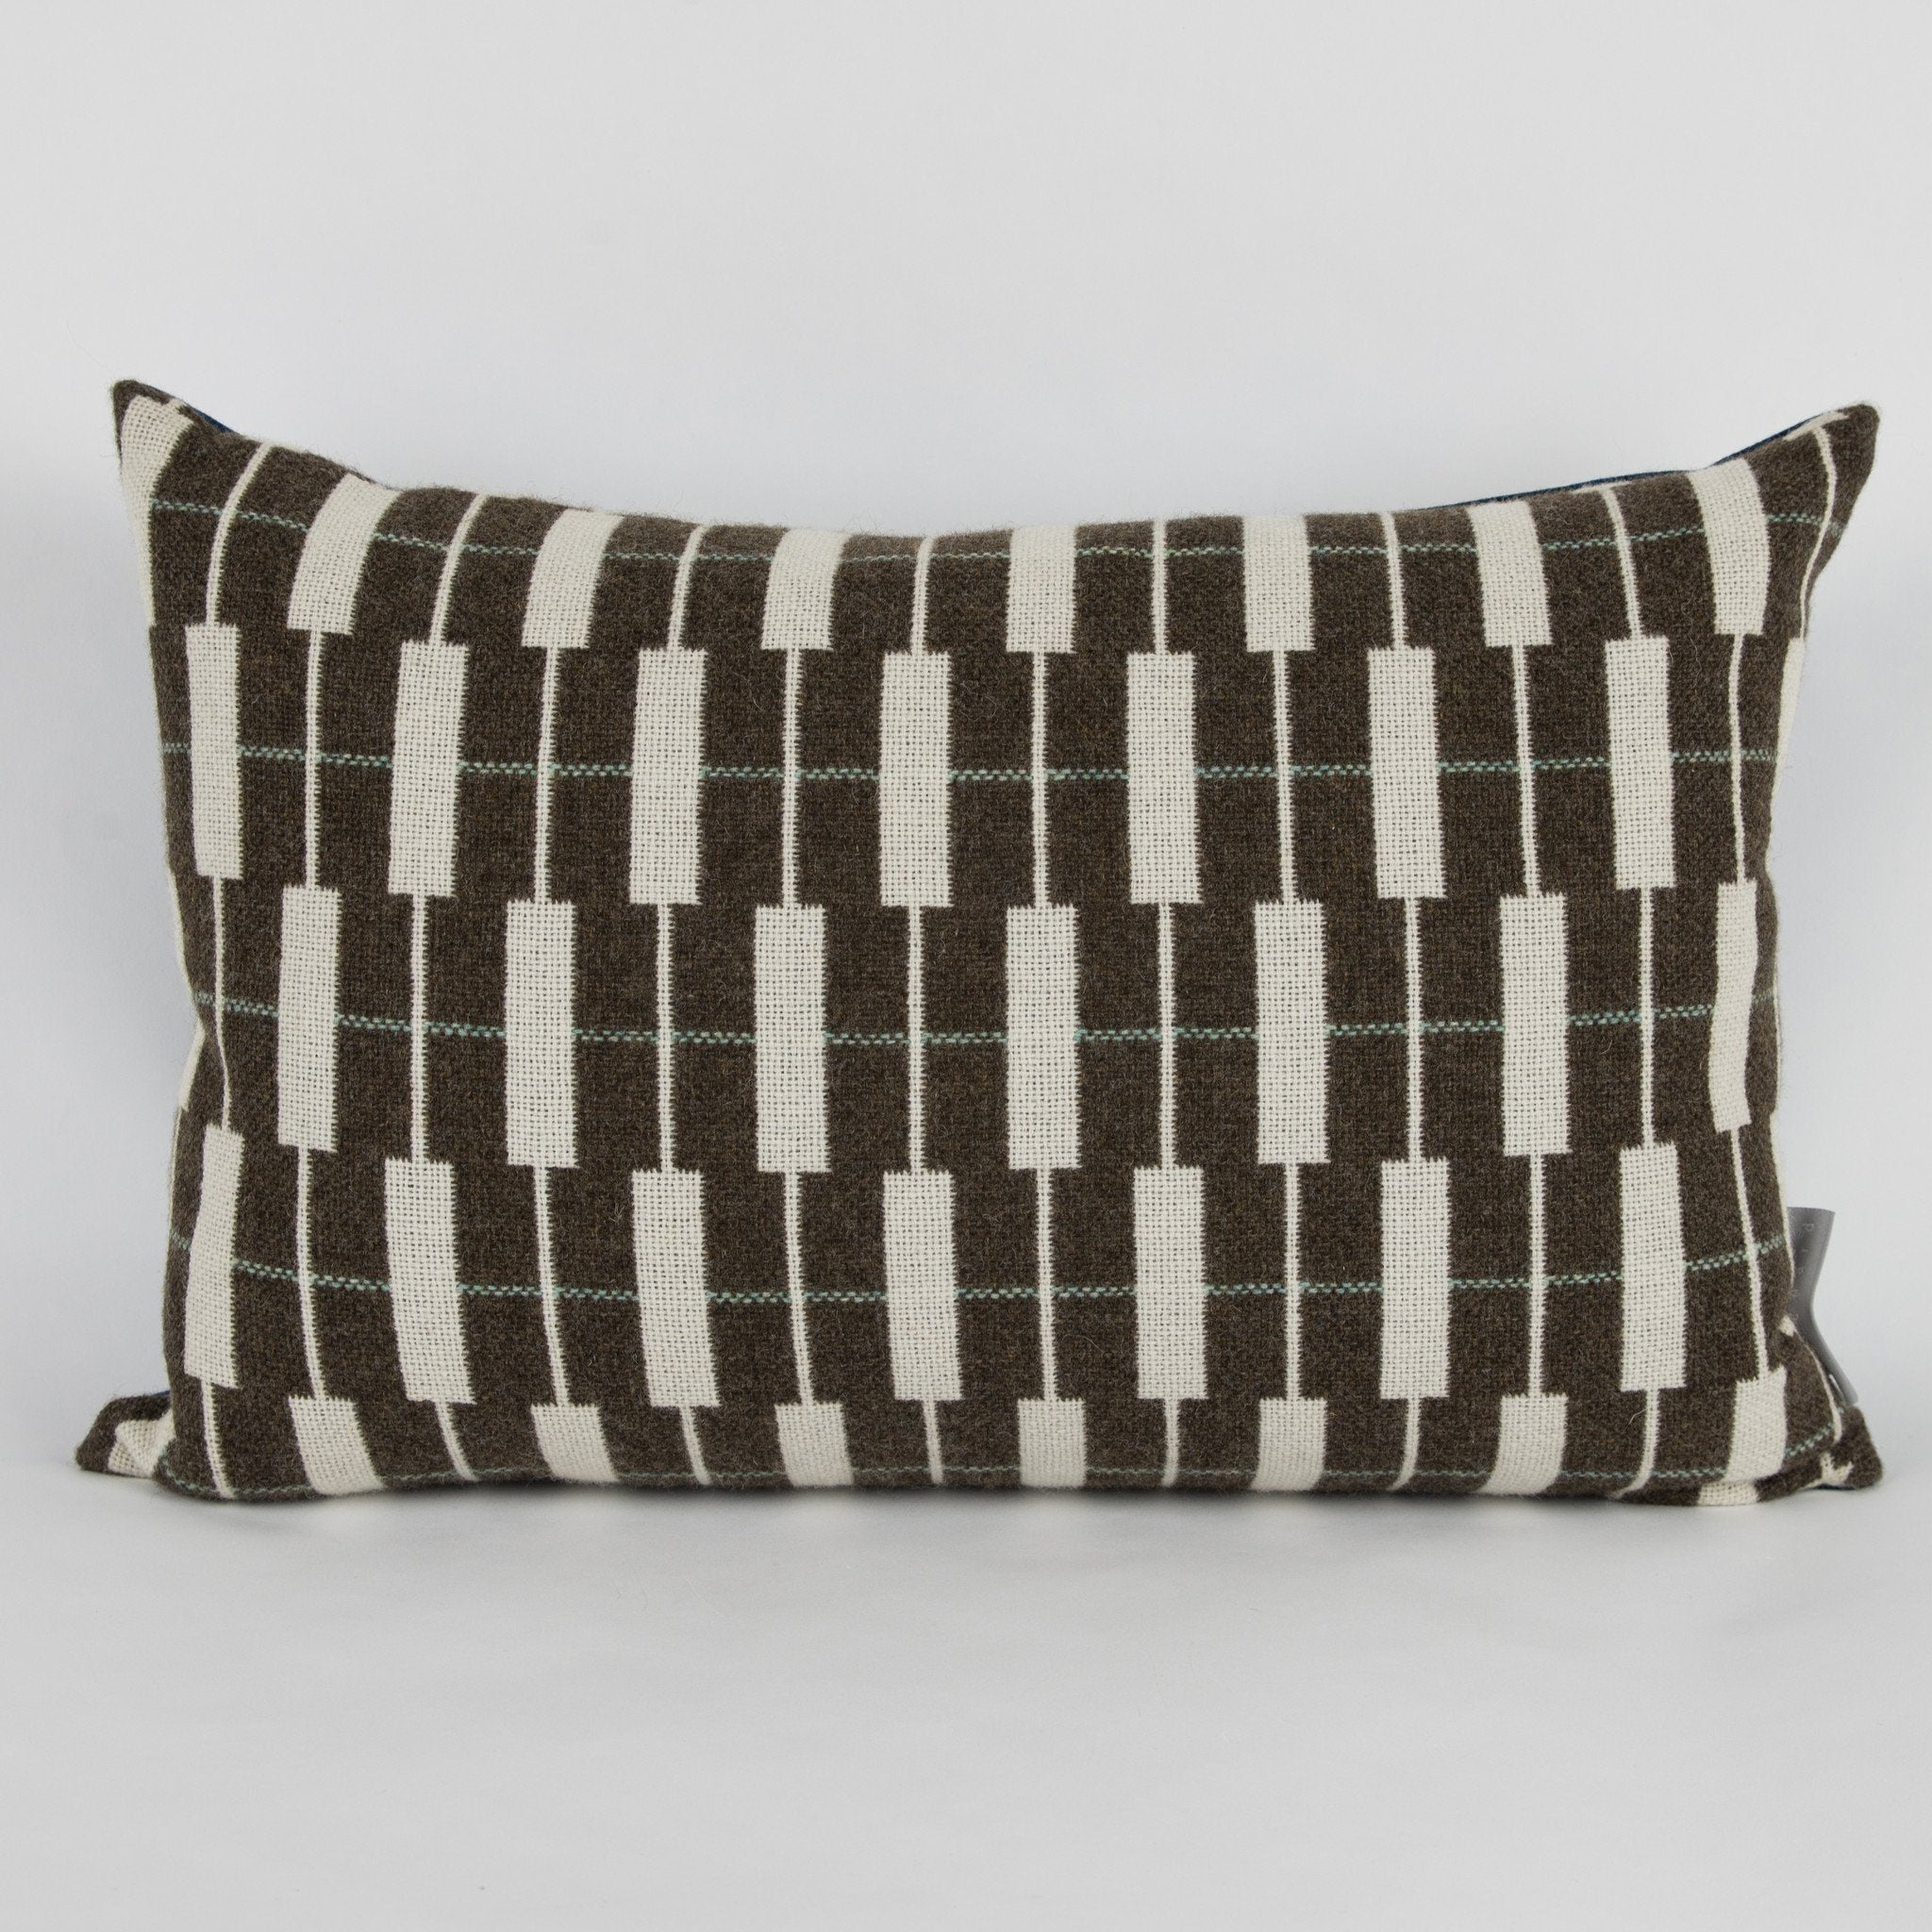 Eleanor Pritchard Marker Cushion